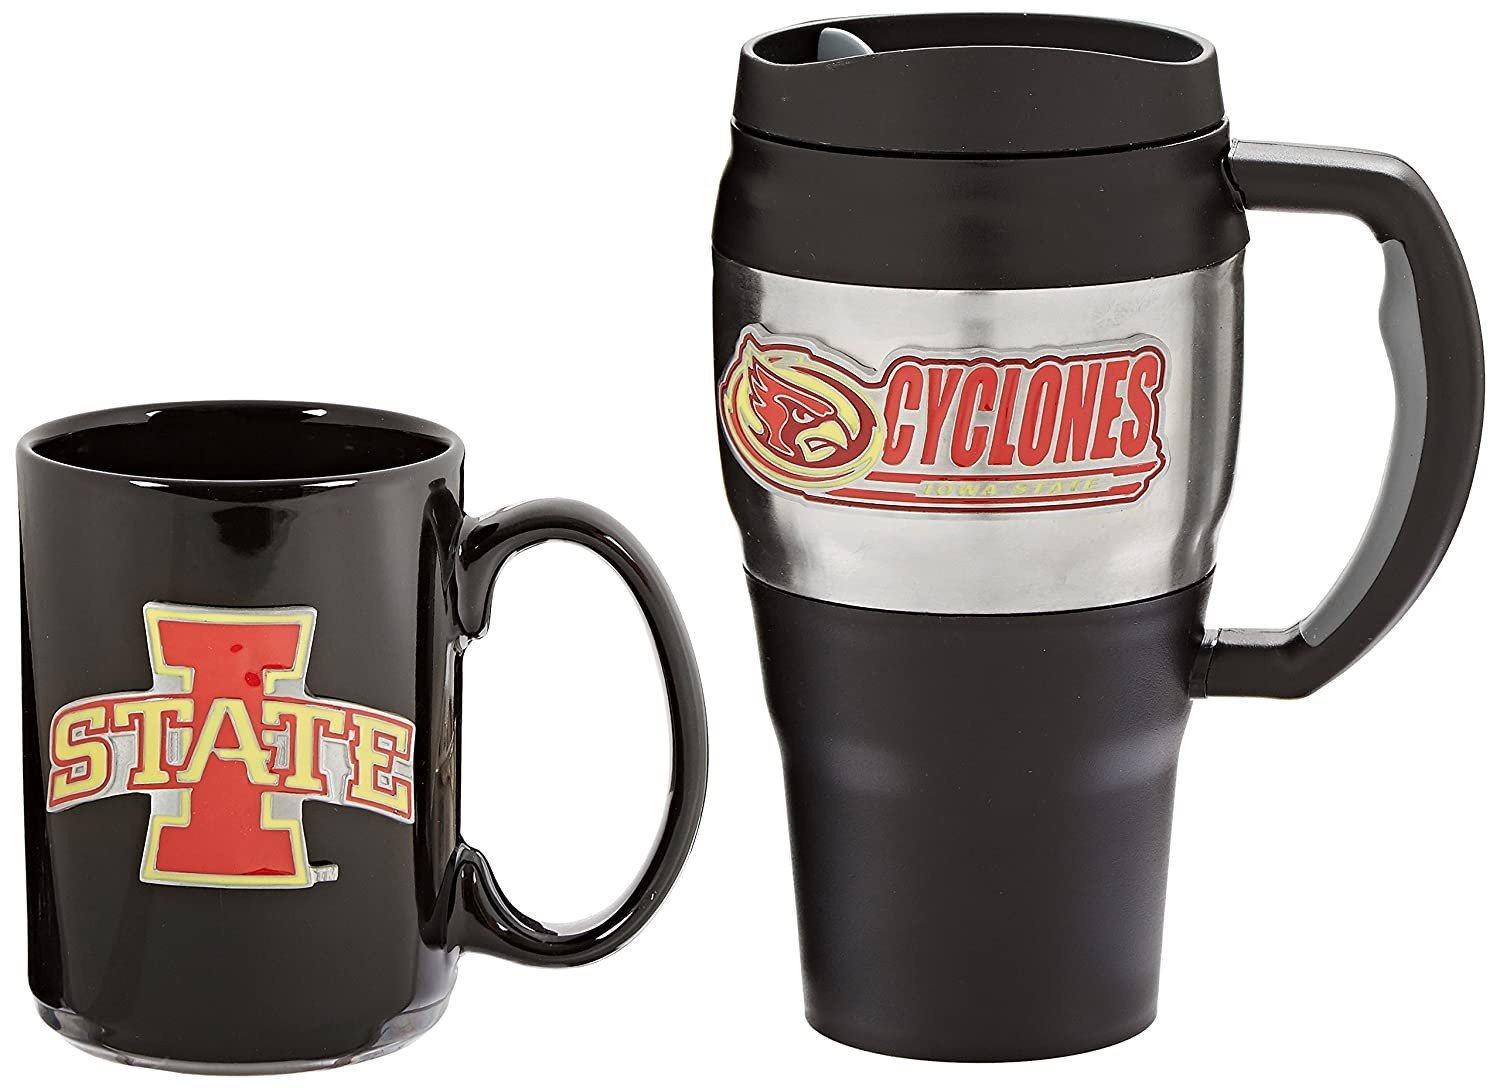 Iowa State NCAA 20-Ounce Heavy Duty Travel Mug and 15-Ounce Ceramic Mug Set